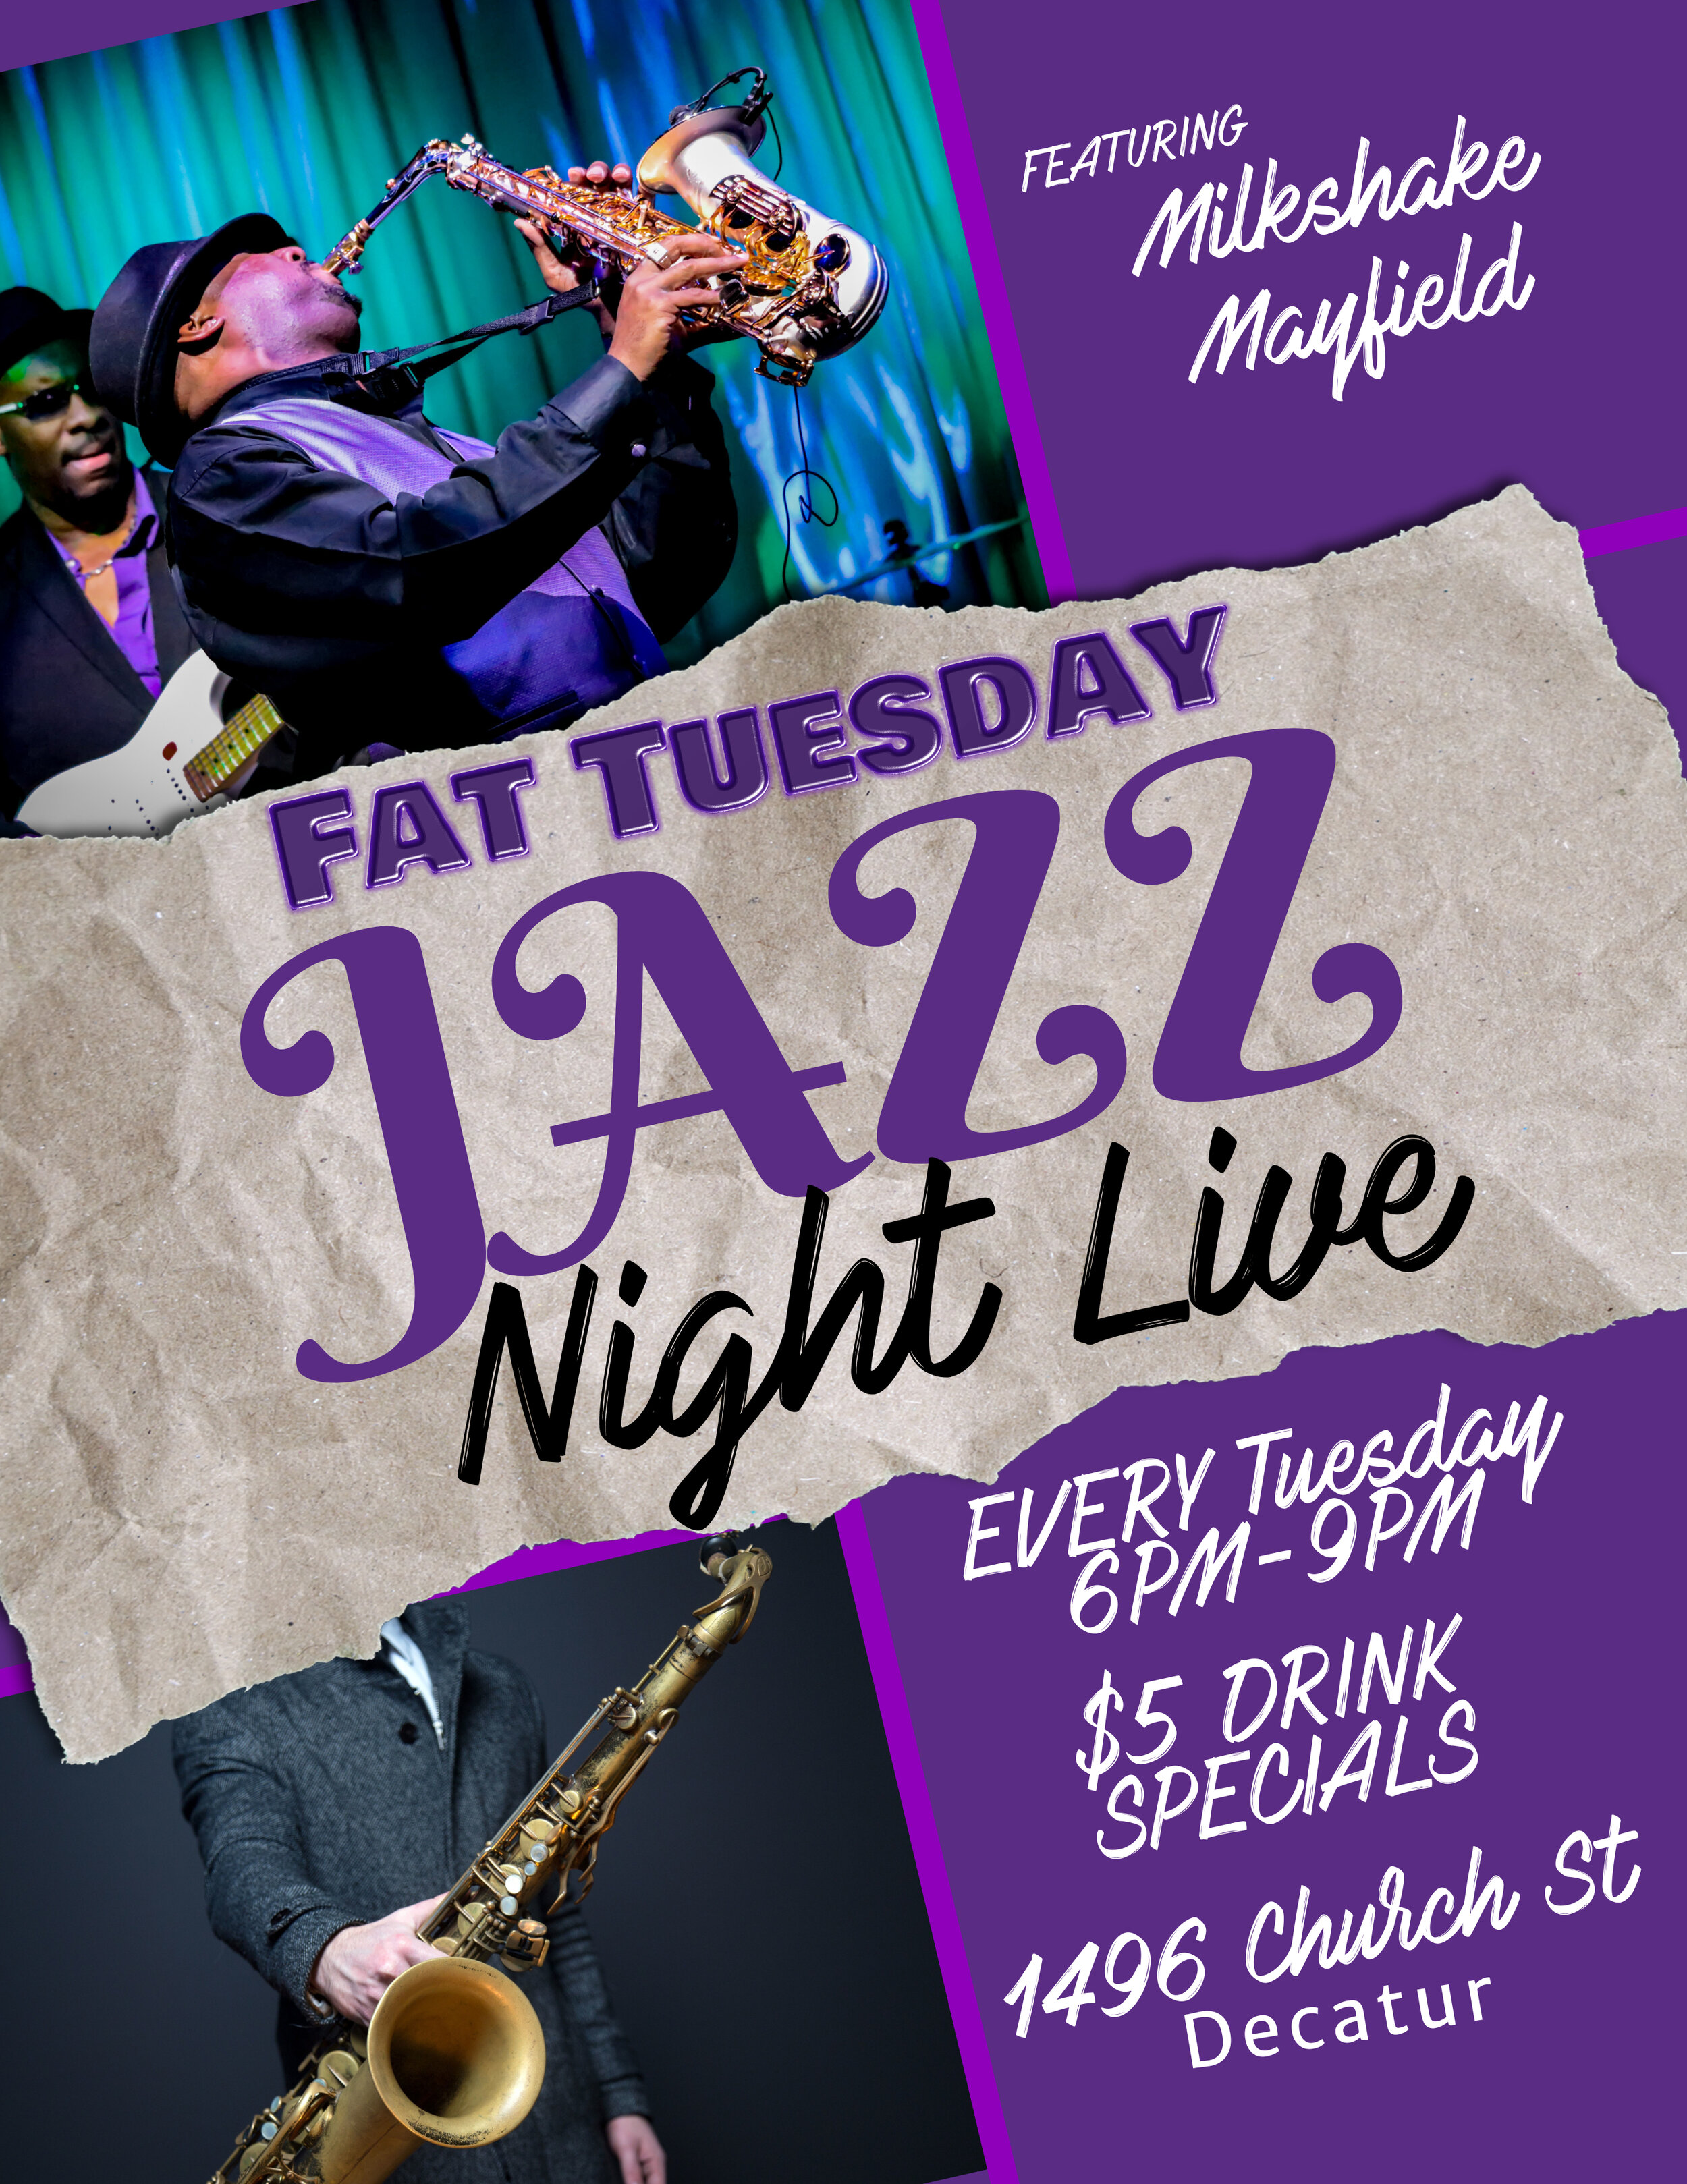 Jazz Night Live Flyer.jpg